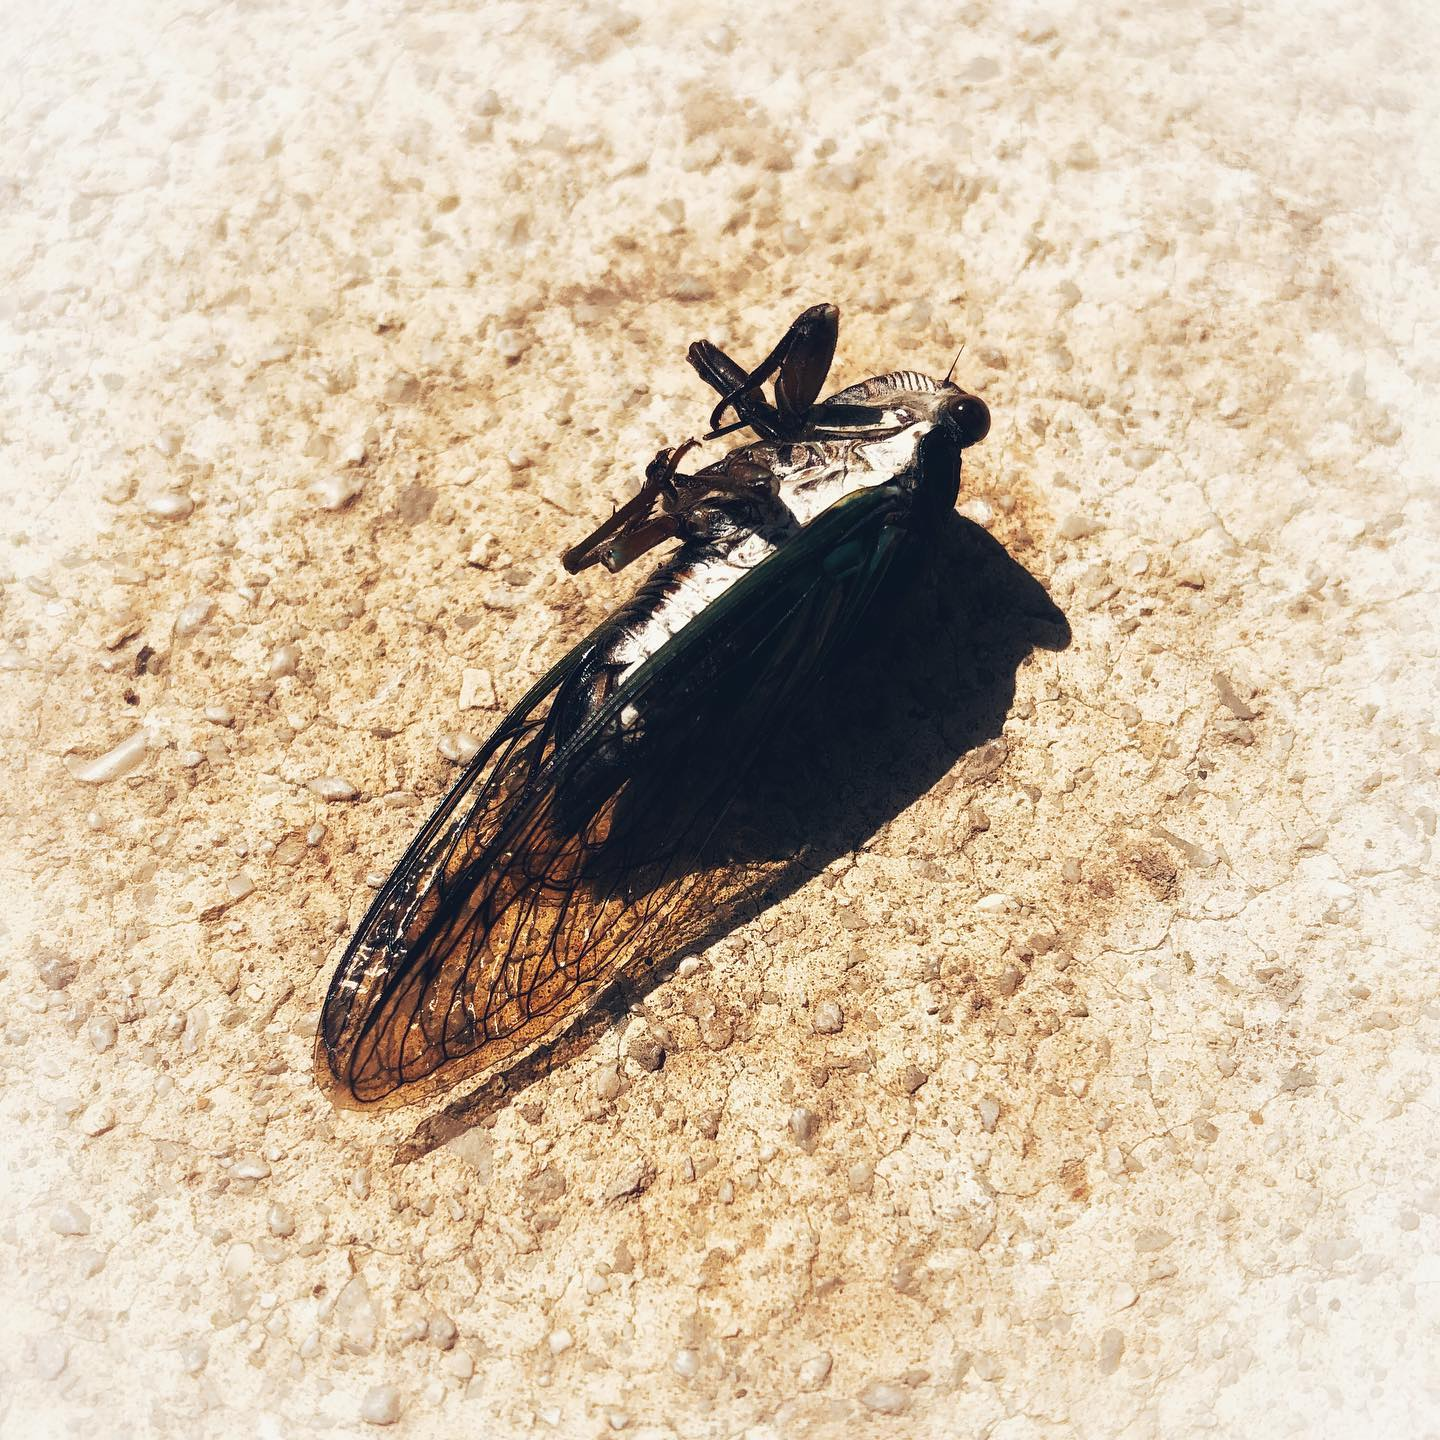 Dear aurally annoying cicadas,I noticed as of this morning you finally shut the hell up. Now I can hear the crickets and frogs, as opposed to what I can only imagine would be the sound of white noise in the waiting room of some 1-Star Howard Johnson in the Middle of Nowhere. Thank you for dying.Signed, Probably everyone.